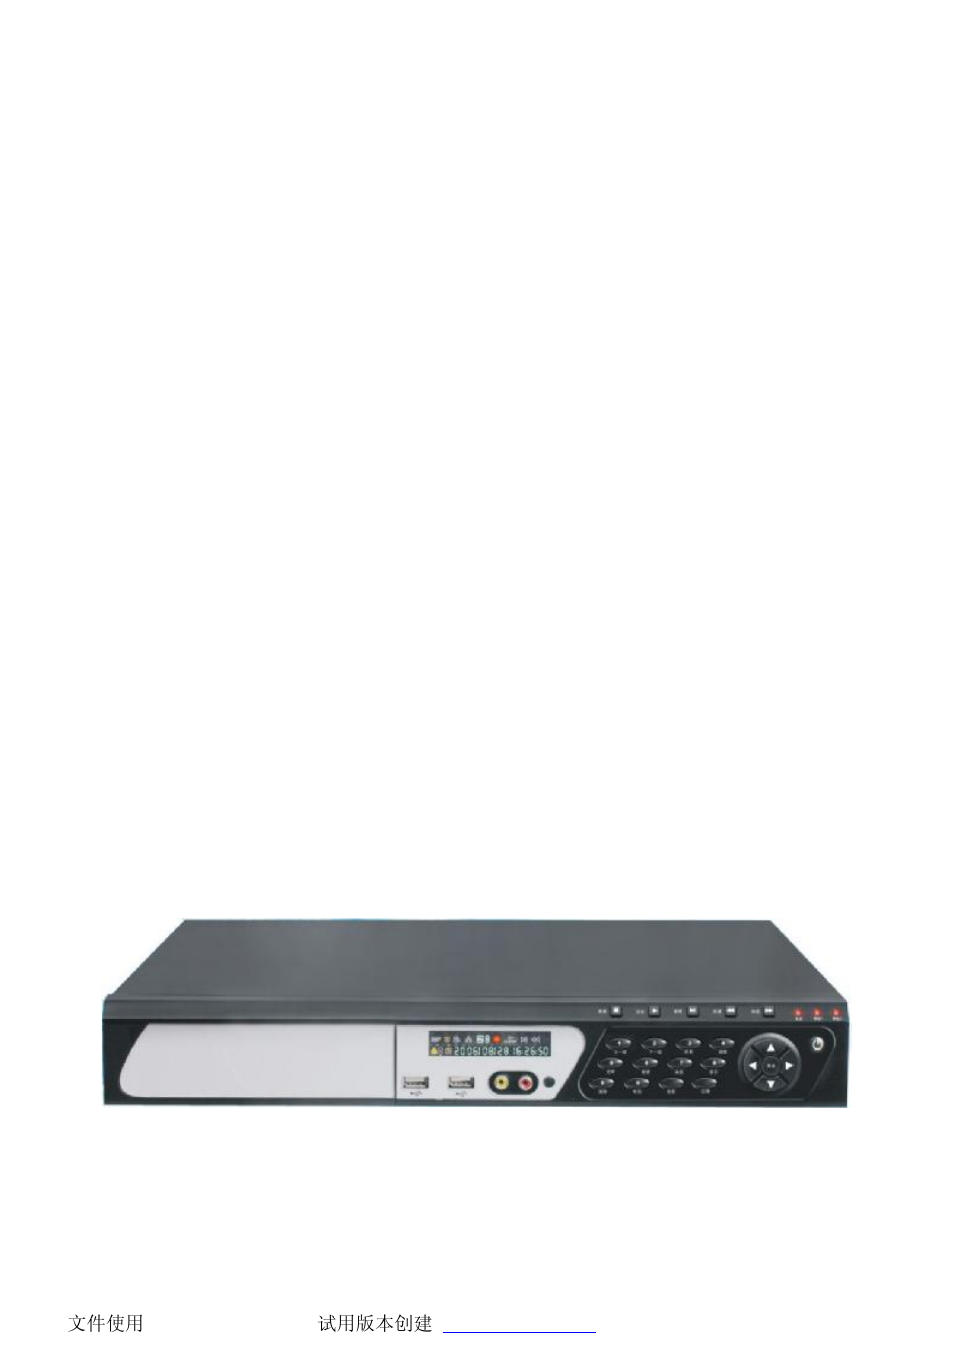 philips dvr2104 user manual 37 pages rh manualsdir com Q-See DVR Manual DCT6412 User Guide